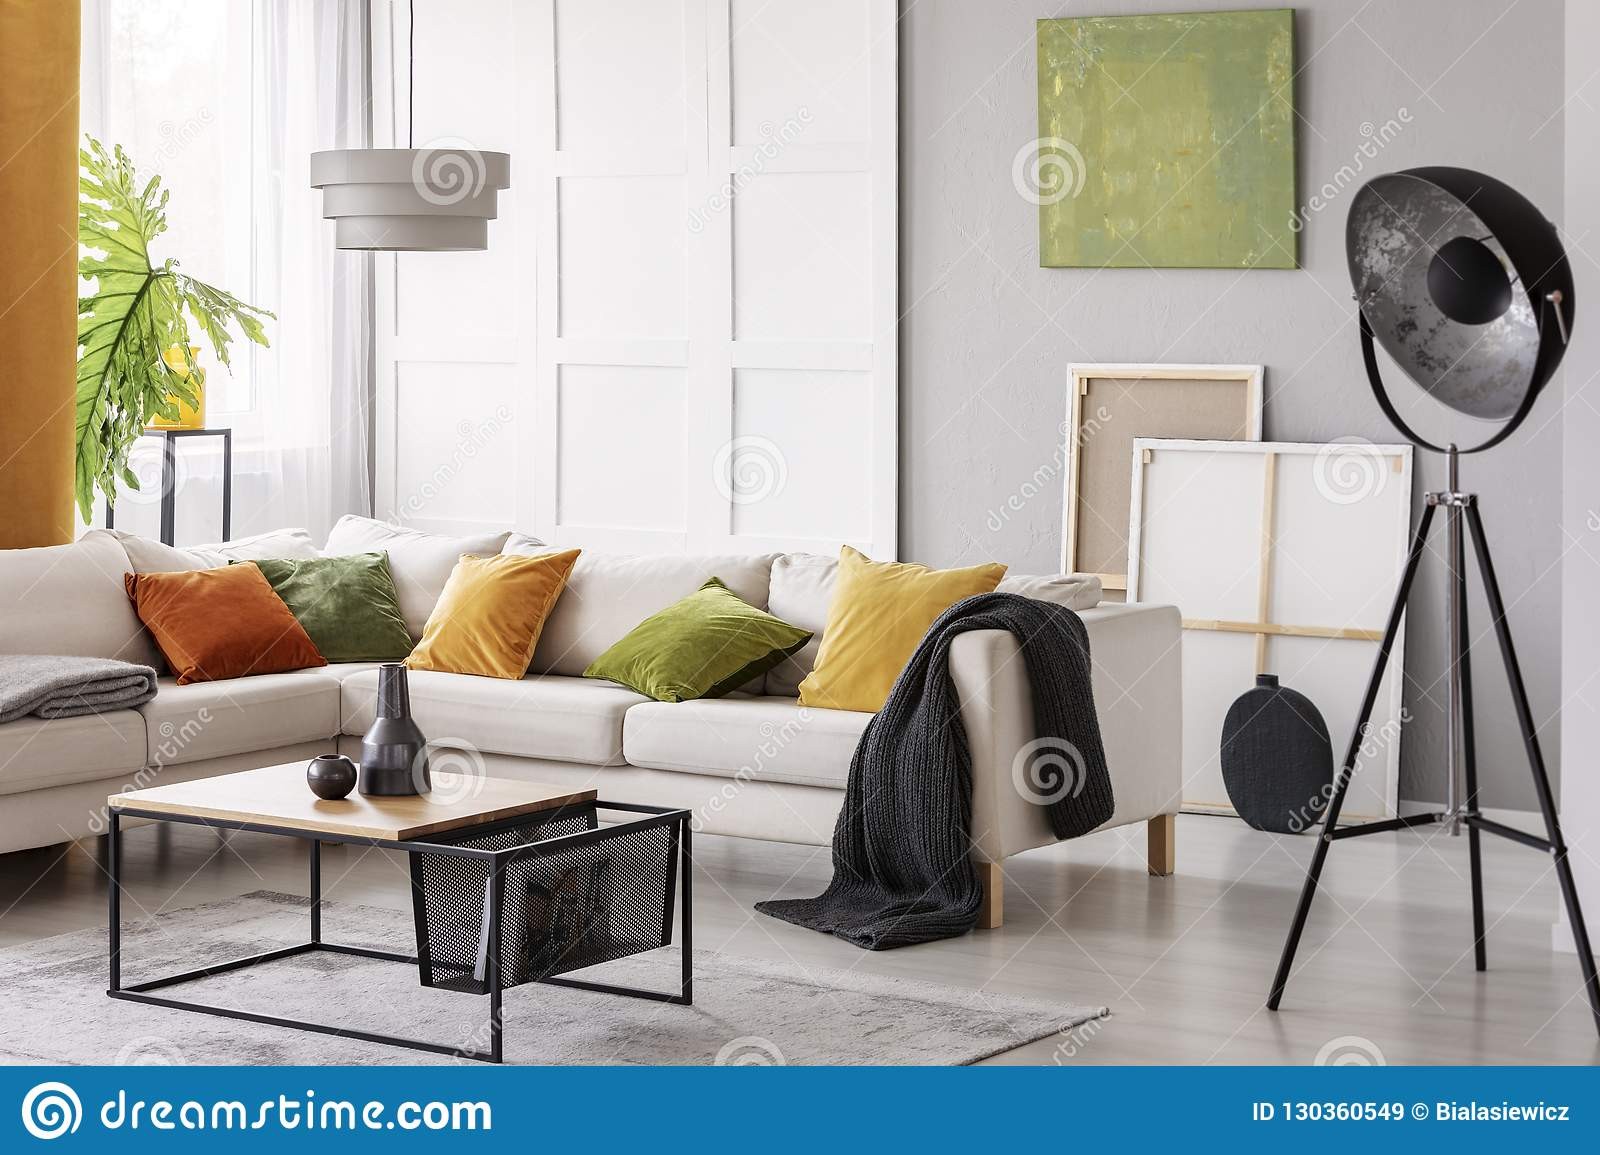 White Elegant Corner Sofa With Orange Green And Yellow Pillows In Stylish Living Room Interior With Modern Coffee Table And Indust Stock Image Image Of Living Autumn 130360549